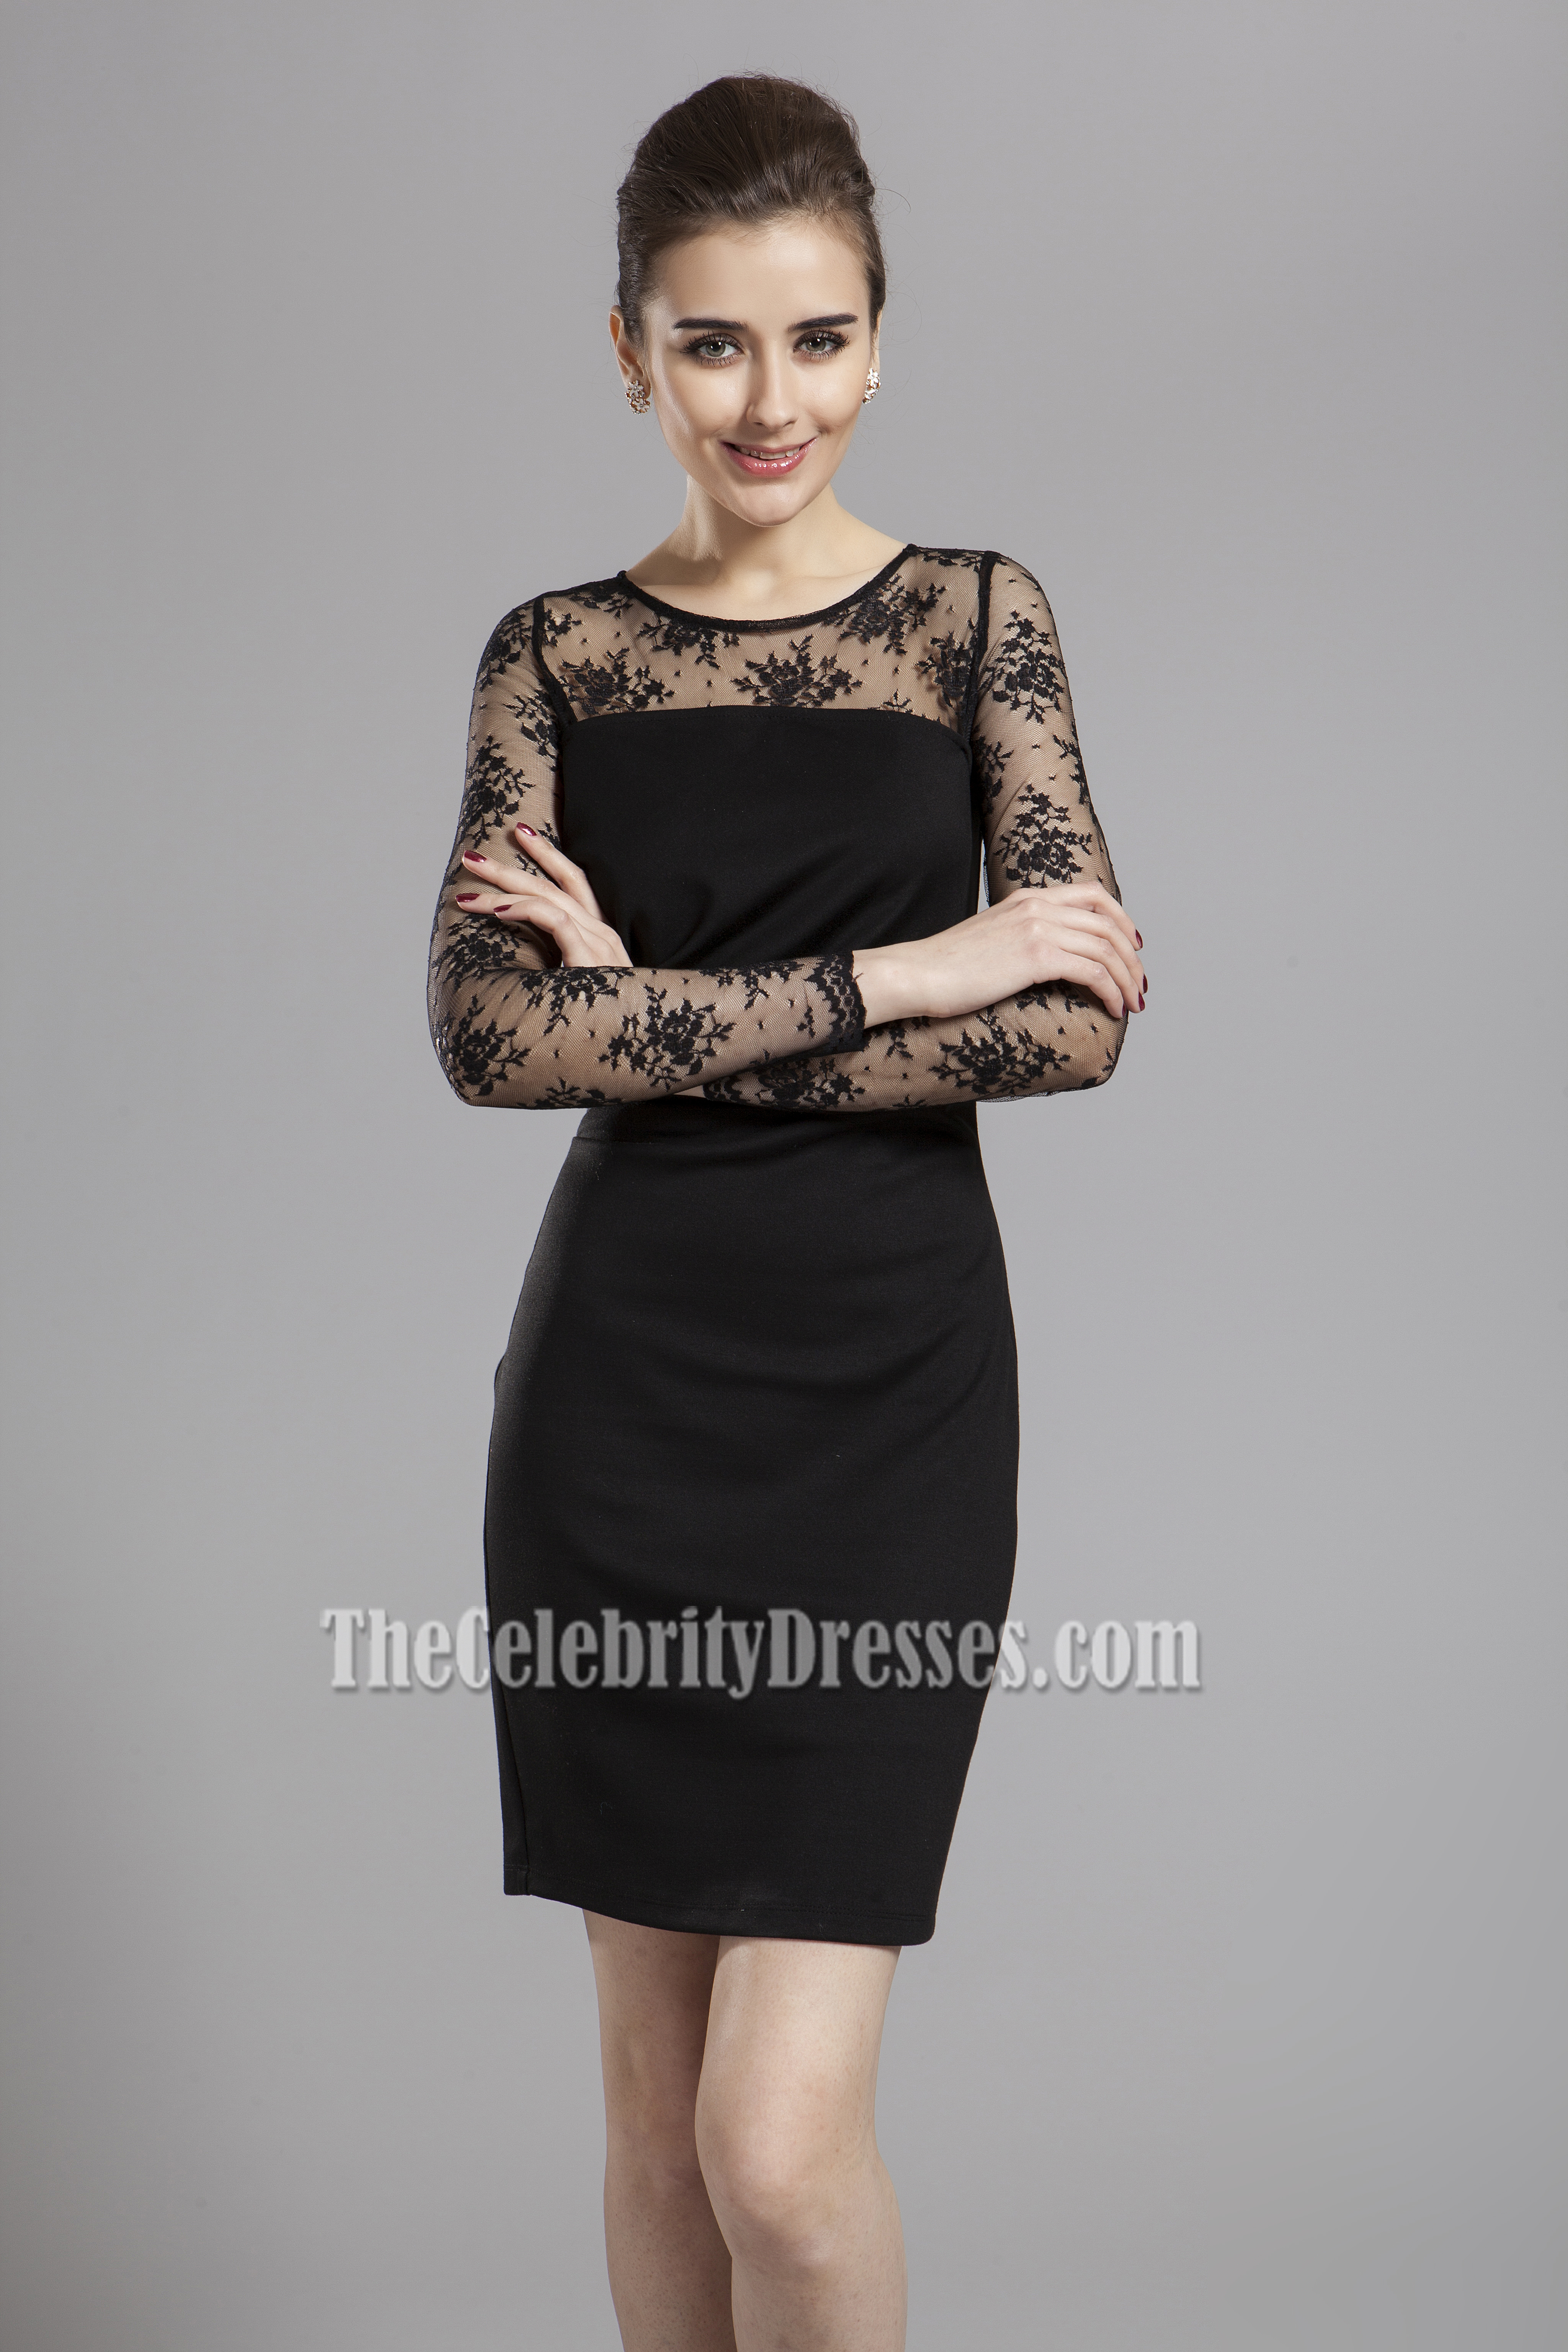 Discount Black Long Sleeve Cocktail Party Dresses - TheCelebrityDresses